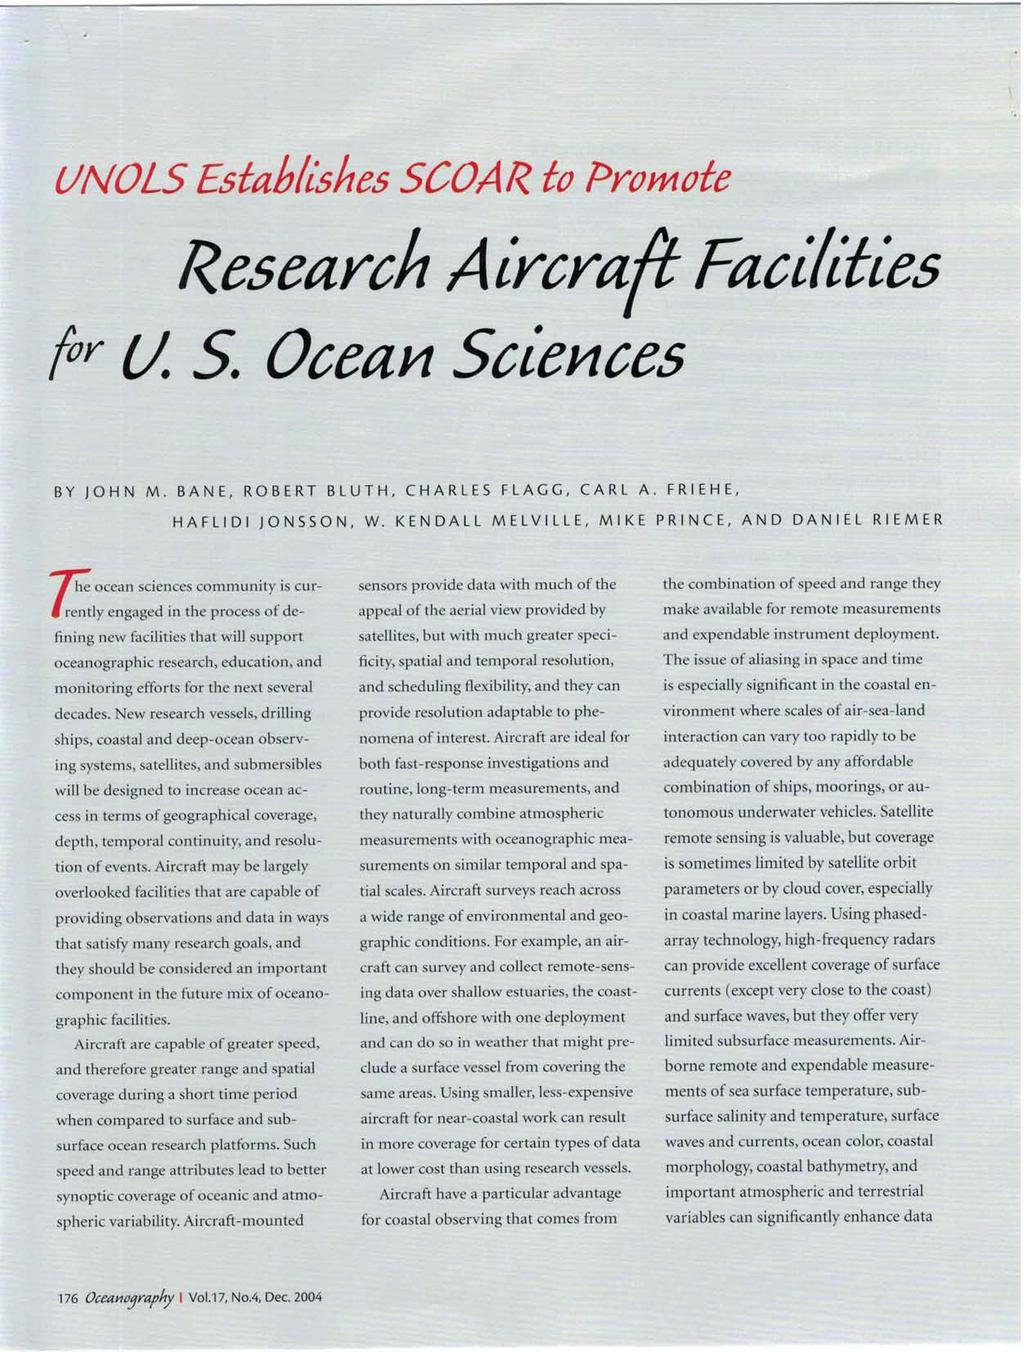 UNOLS Establishes SCOAR to Promote Research Aircraft Facilities Ar U. S. Ocean Sciences BY JOHN M. BANE, ROBERT BLUTH, CHARLES FLAGG, CARL A. FRIEHE, HAFLIDI JONSSON, W.